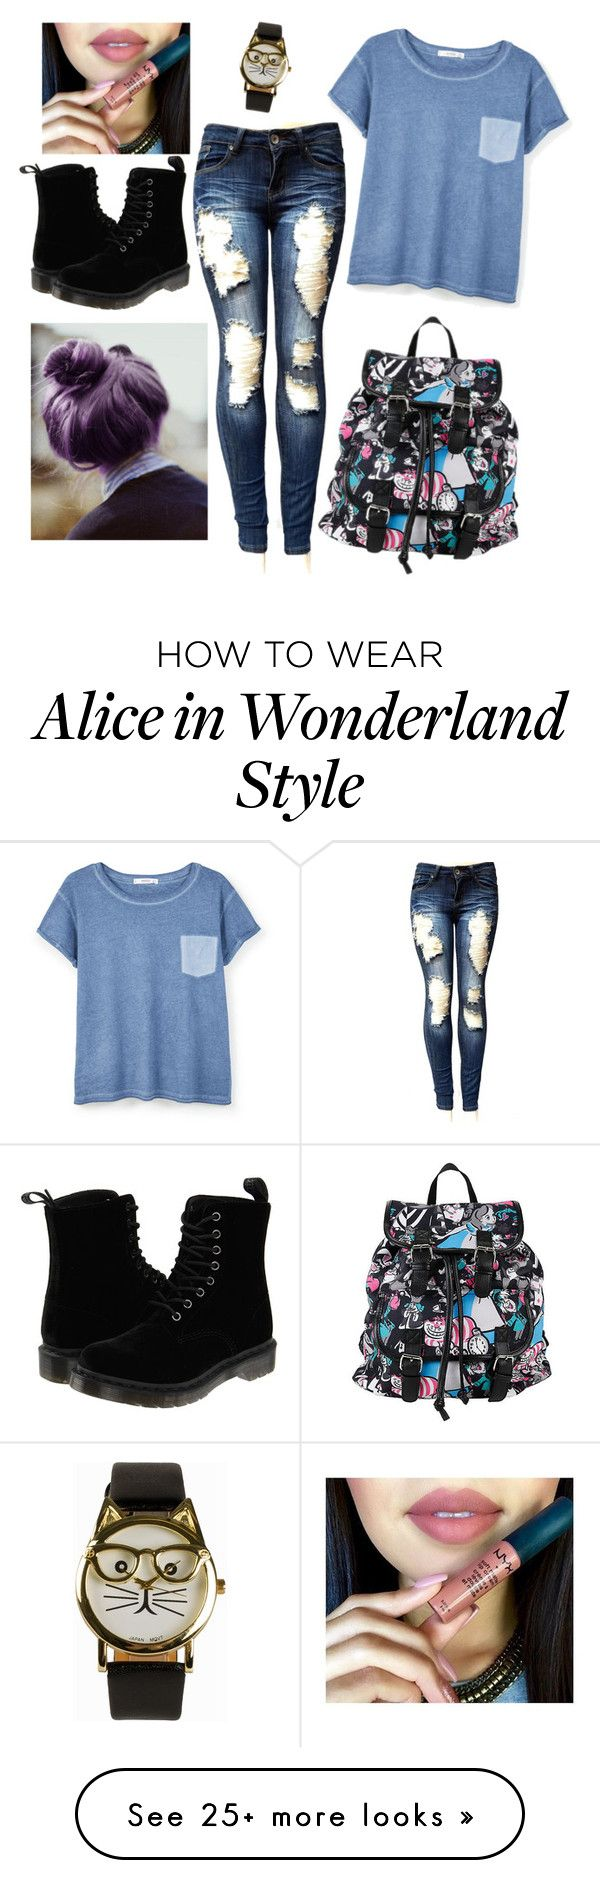 """Untitled #212"" by vasilevakatyaivanova on Polyvore featuring MANGO, Disney, JFR and Dr. Martens"